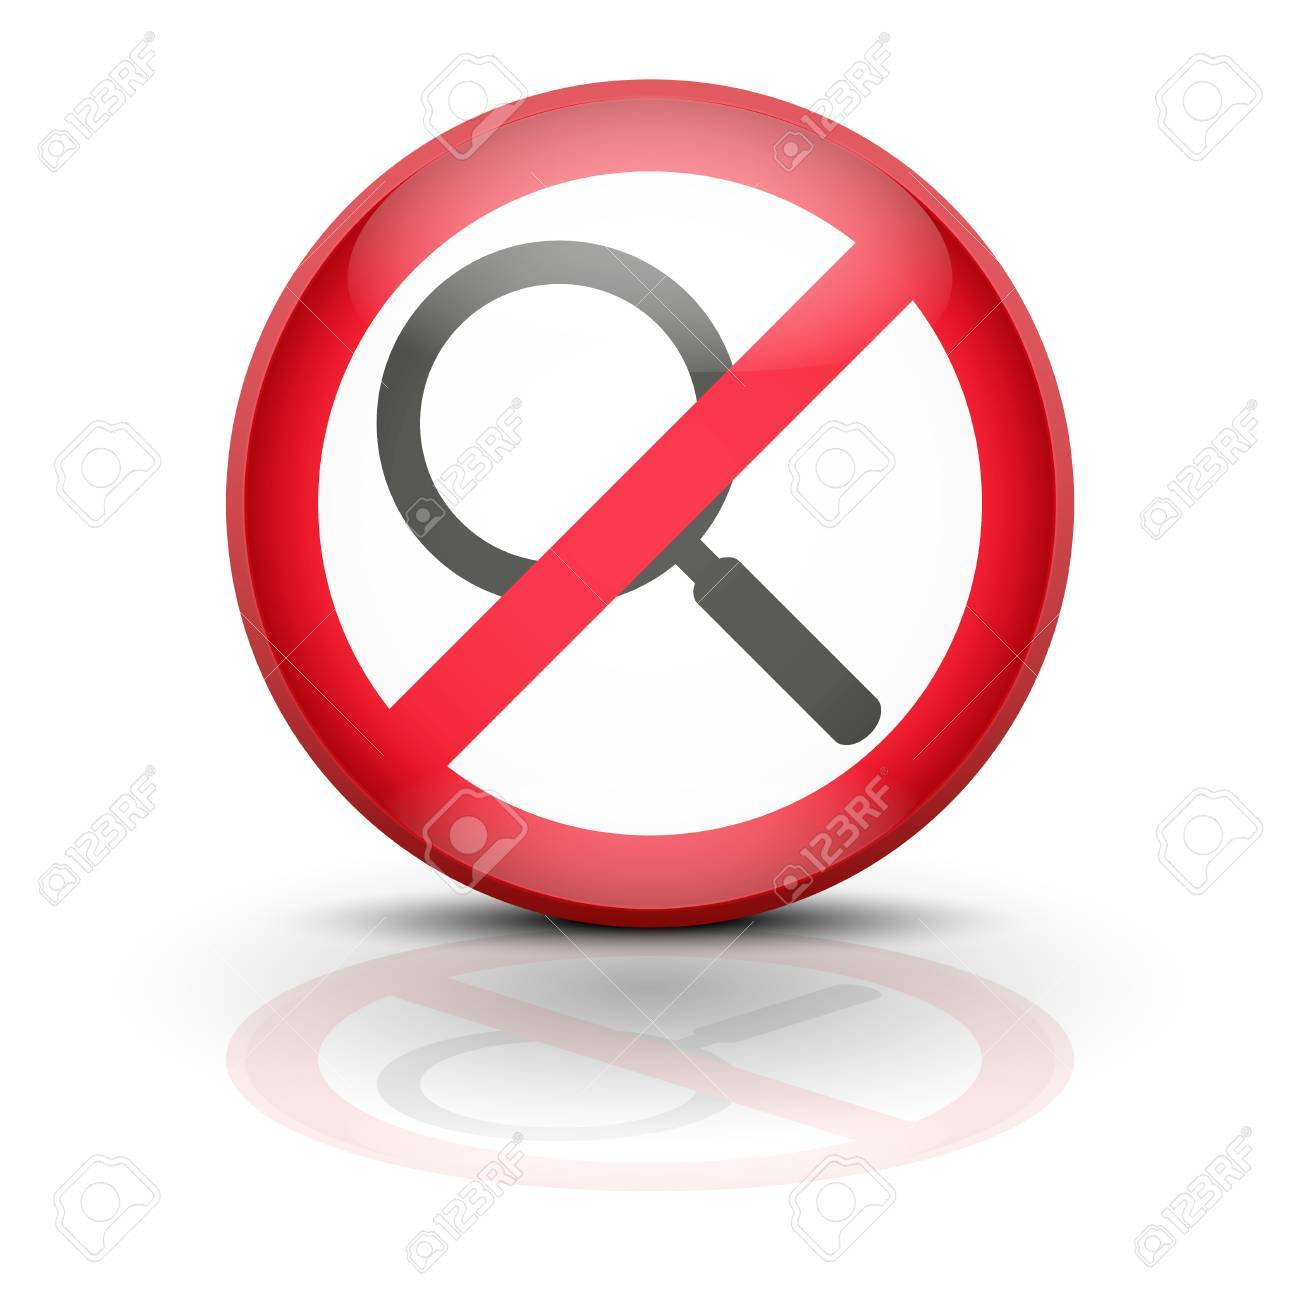 Anti spyware icon symbol illustration. Sign ban wiretapping, surveillance and espionage. Prohibited surveillance. Stock Photo - 25474842